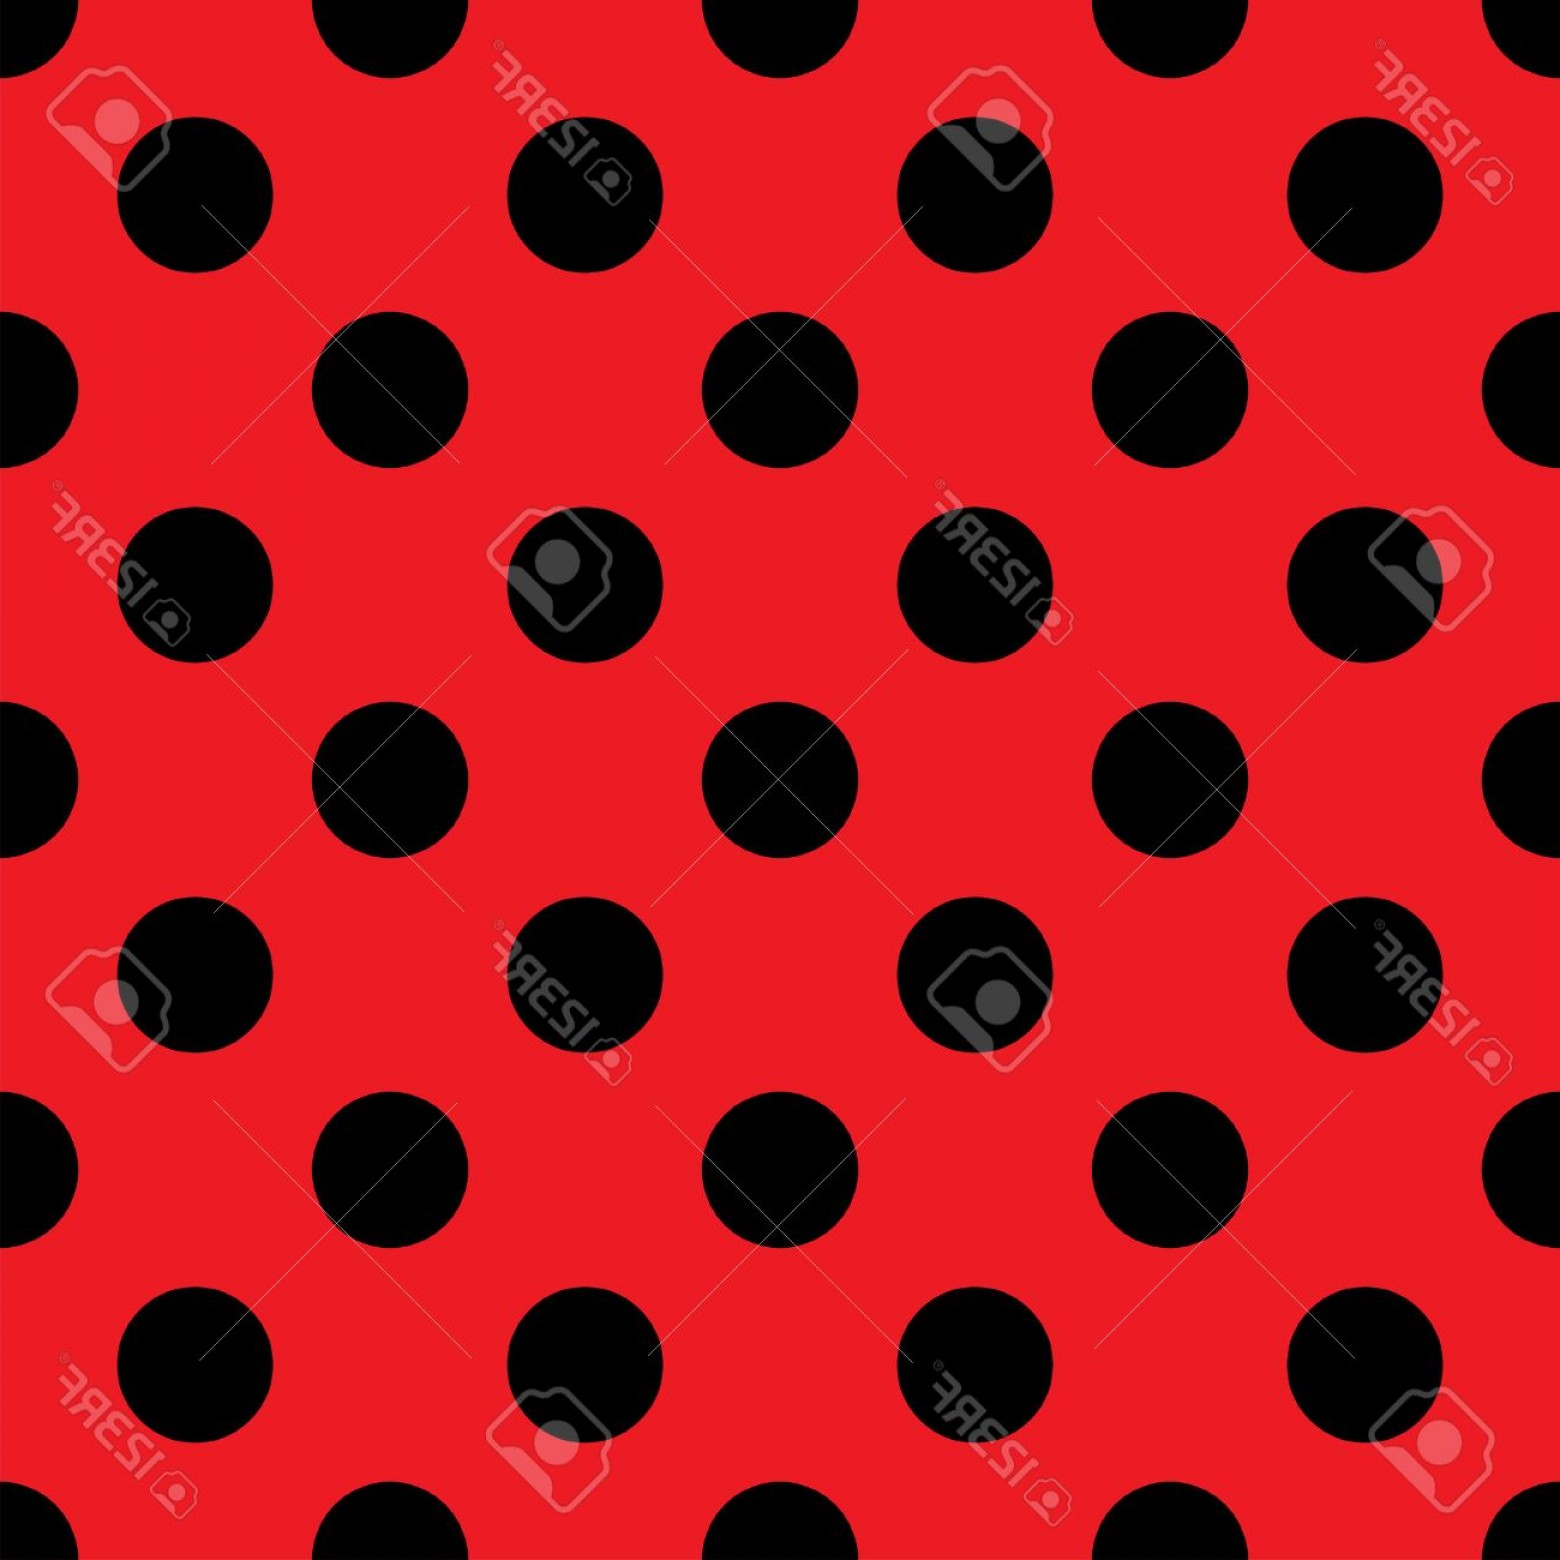 Polka Dot Background Vector Y: Photostock Vector Big Polka Dot Seamless Pattern Abstract Fashion Red And Black Texture Casual Stylish Template Graphi